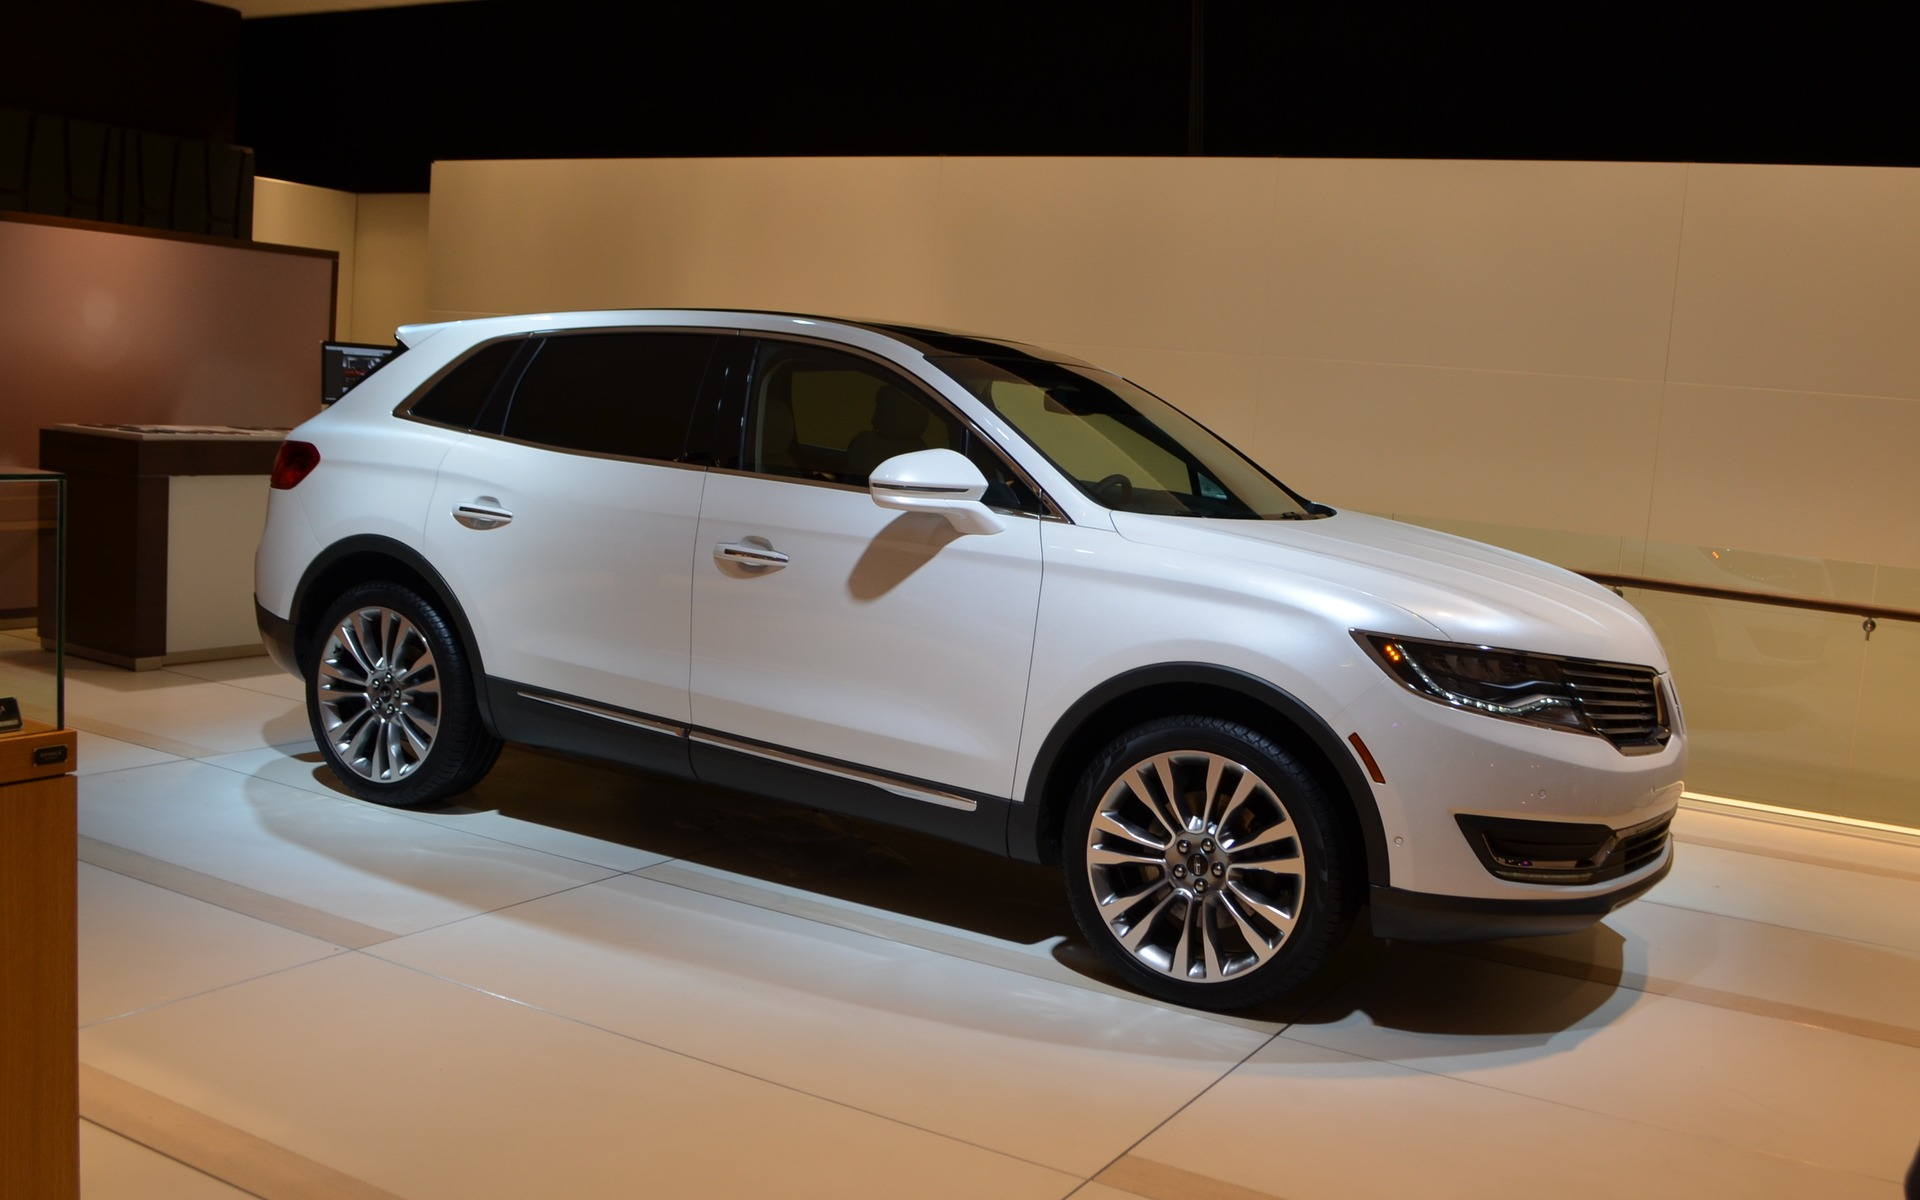 htm in norwood finance specials mkc incentives index rebates mkz lincoln suv lease global